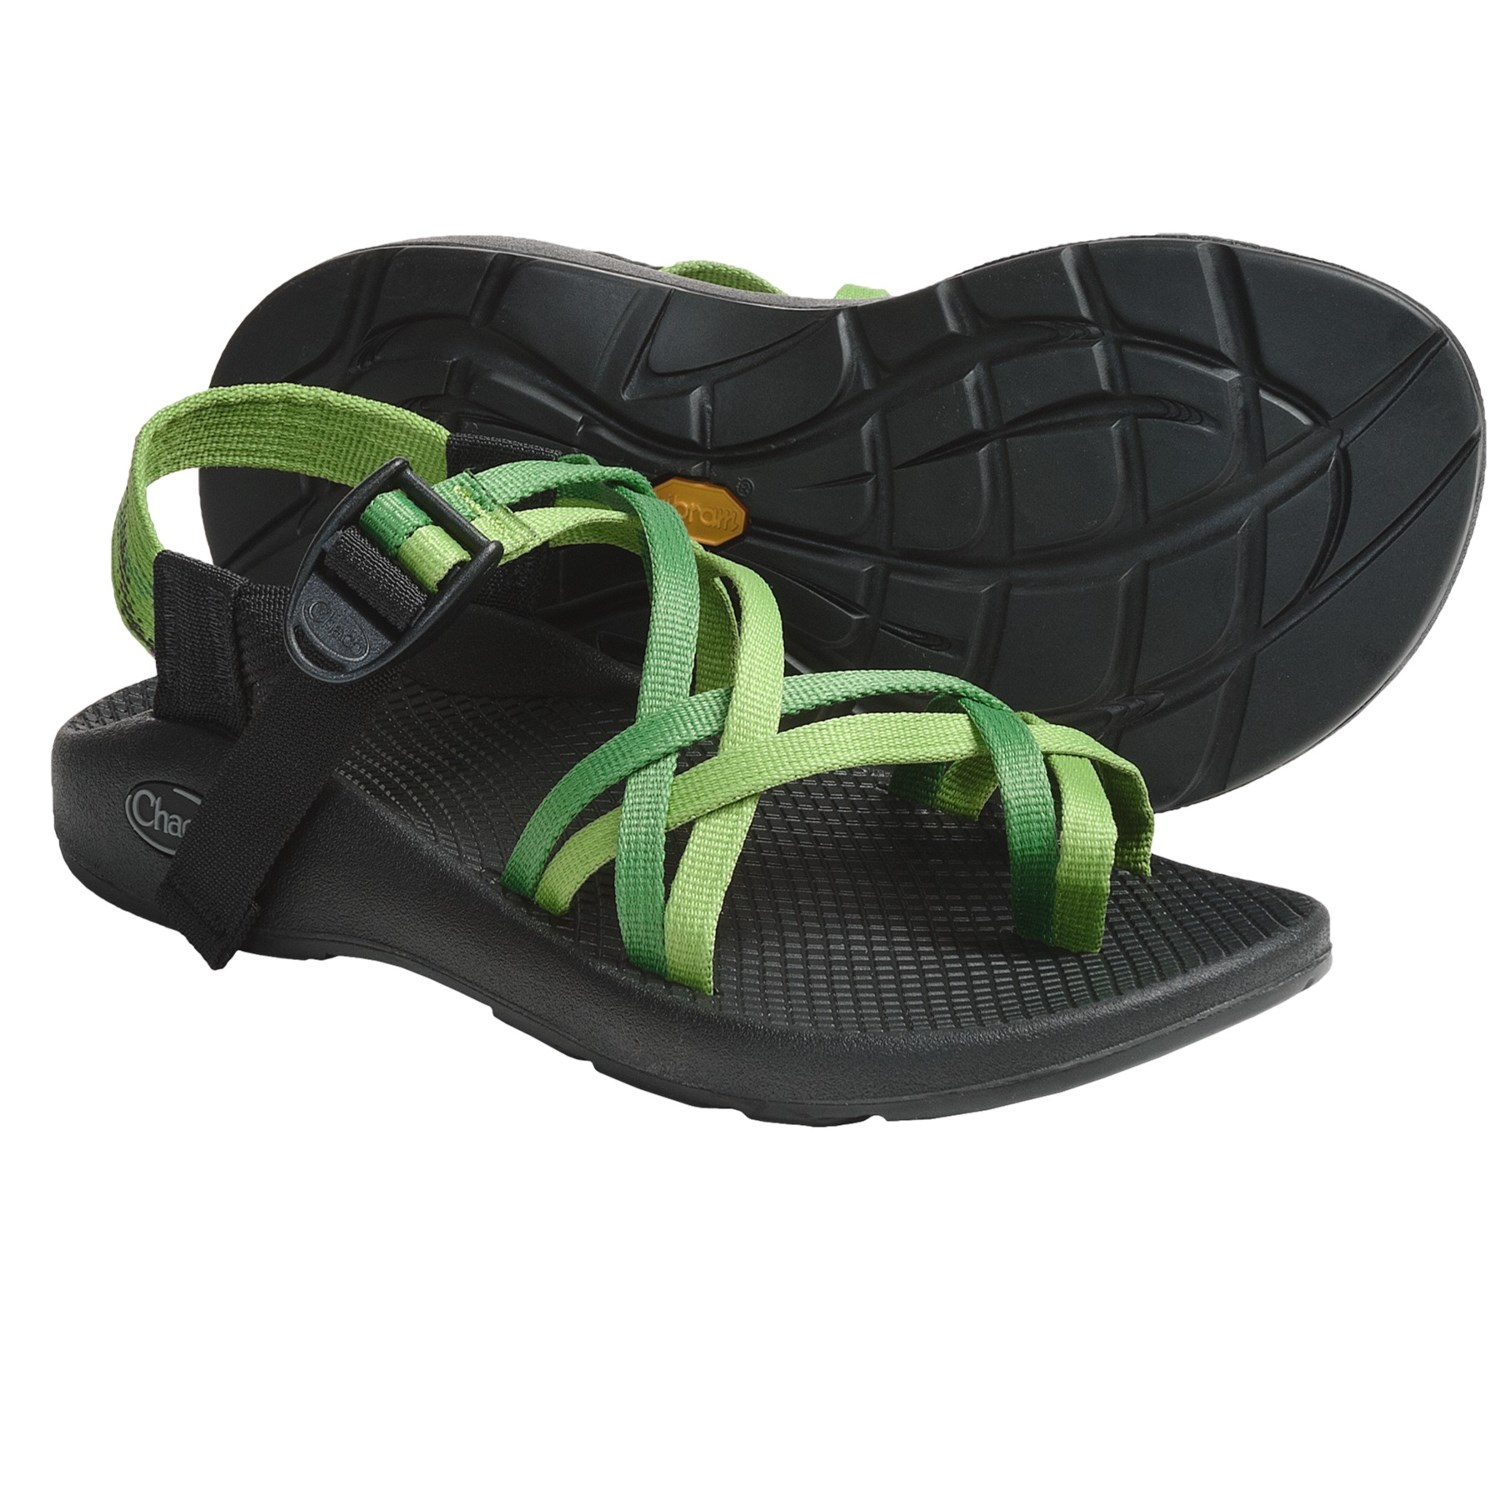 yampa women Existing modelbuilt with chaco's luvseat footbed for lasting arch support and body alignment, the z yampa collection features custom adjustable webbing uppers.